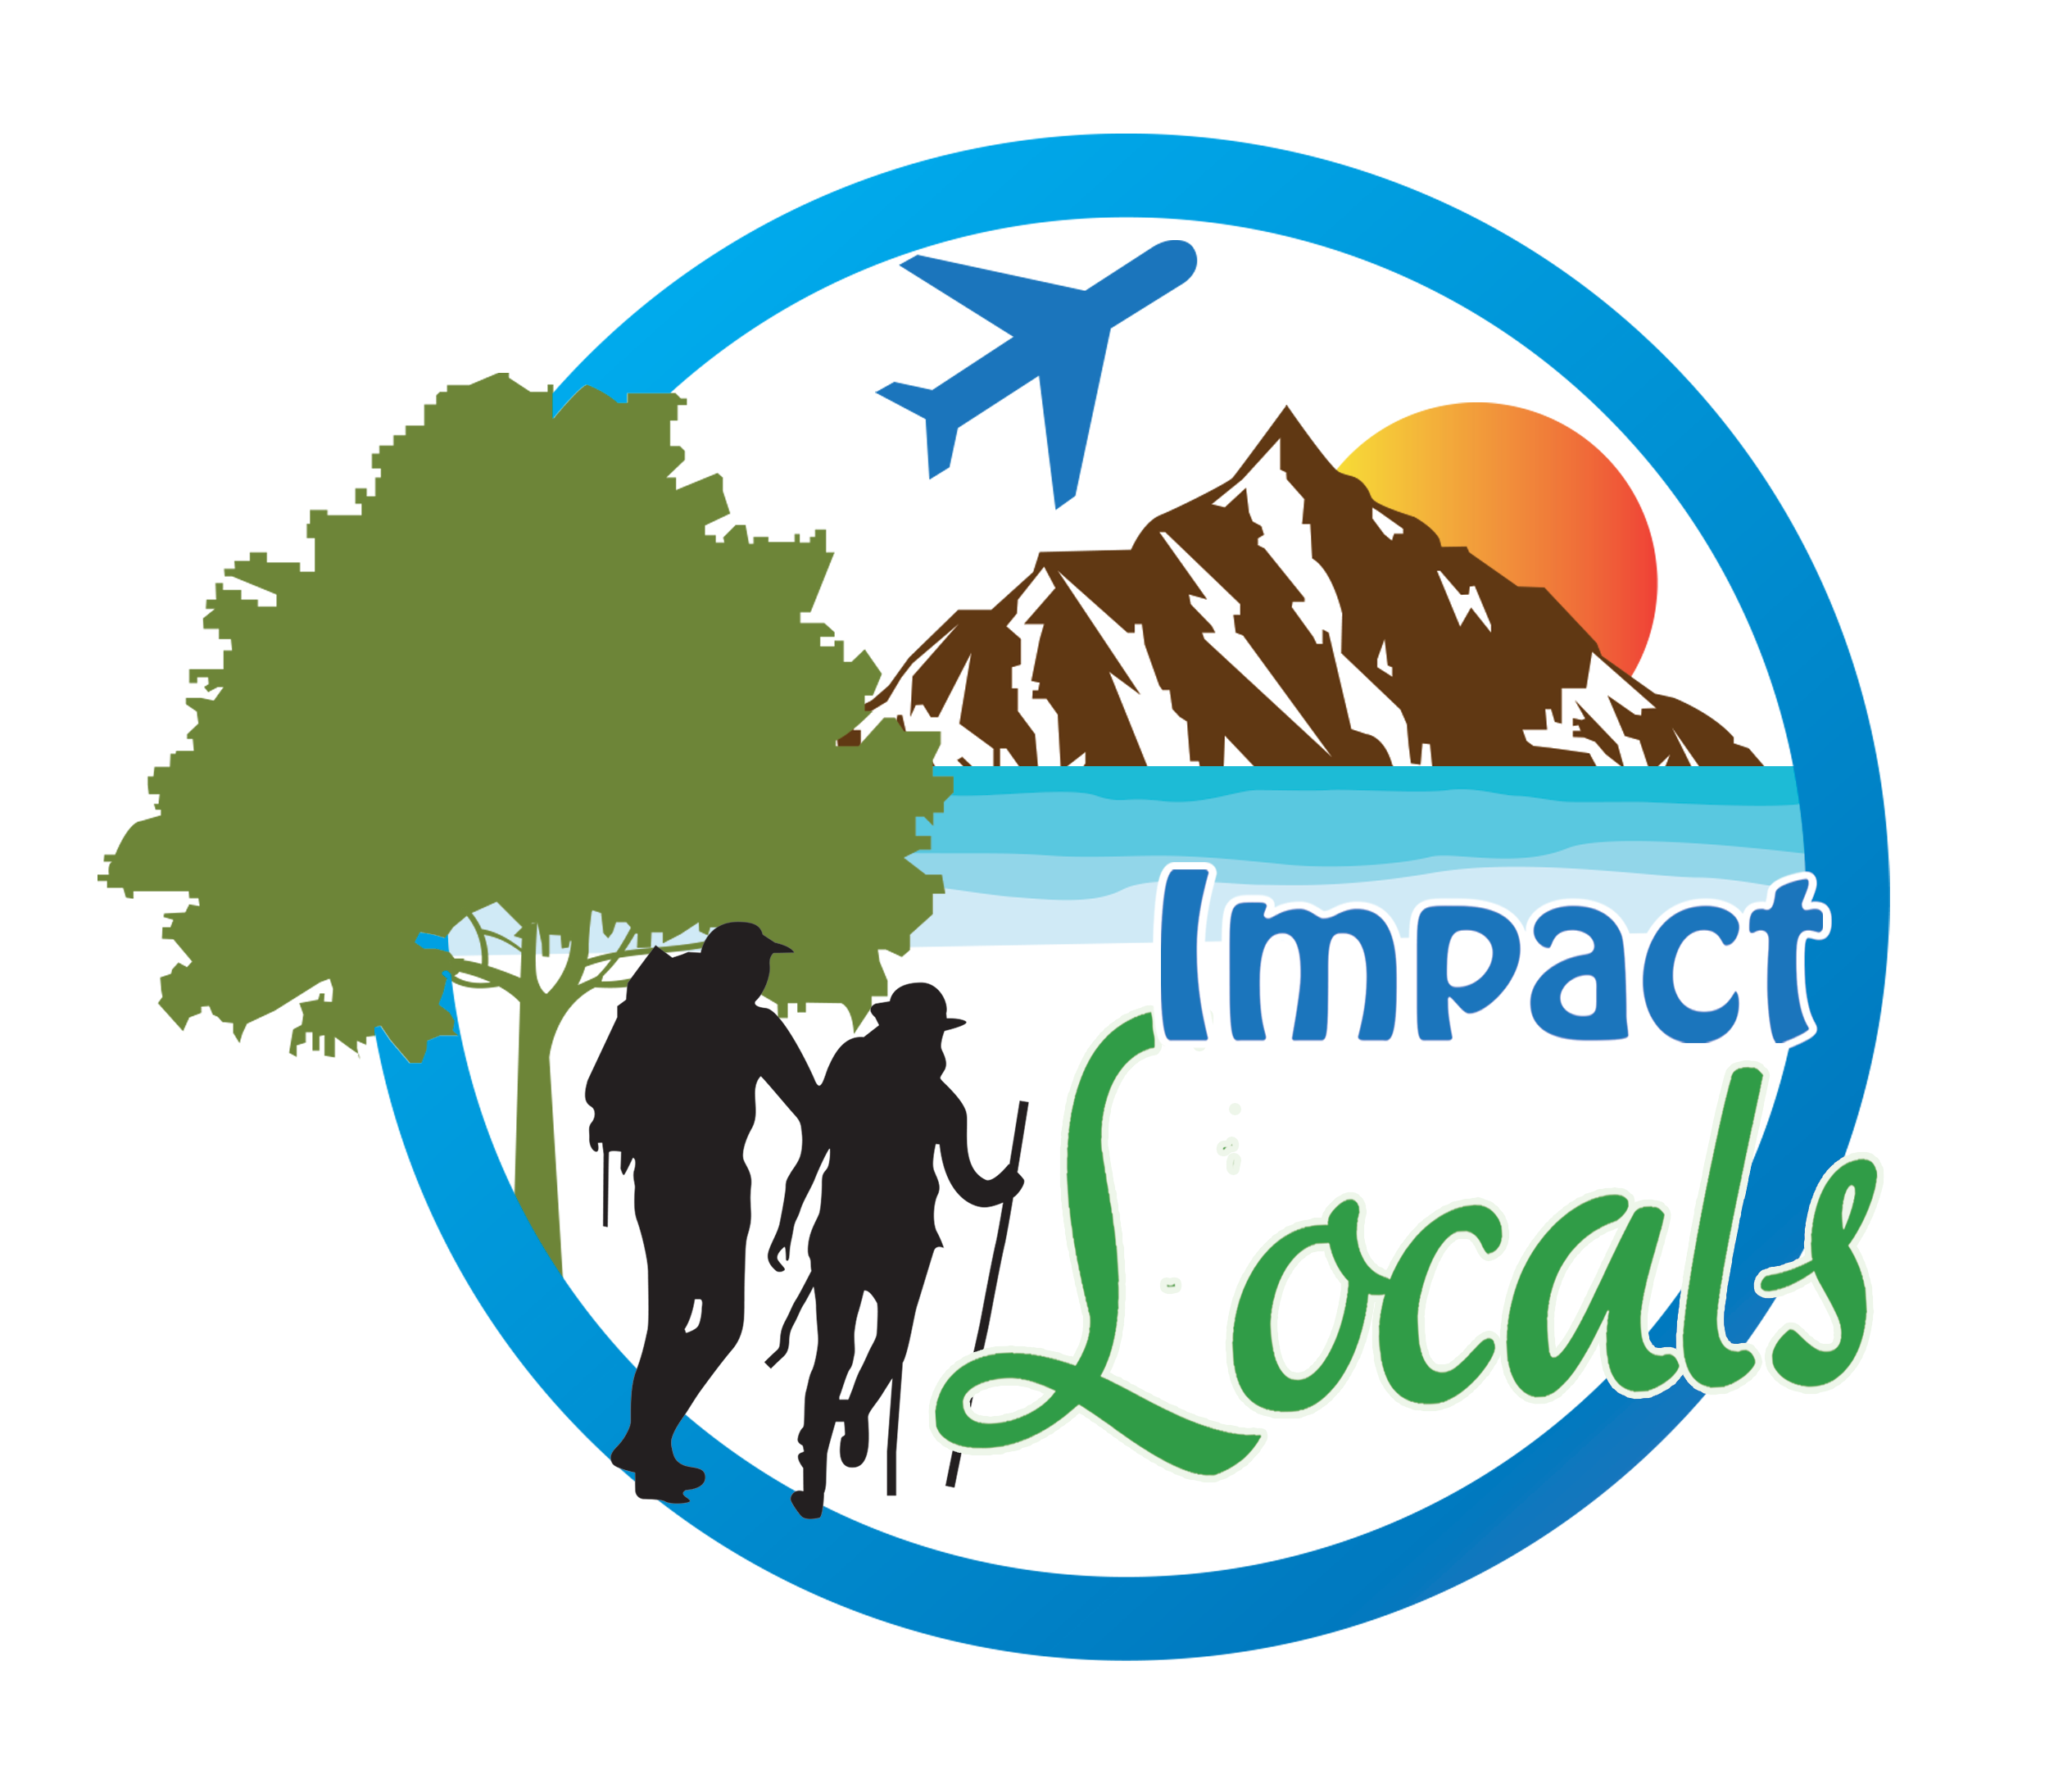 Impact Locals|Empowering local business